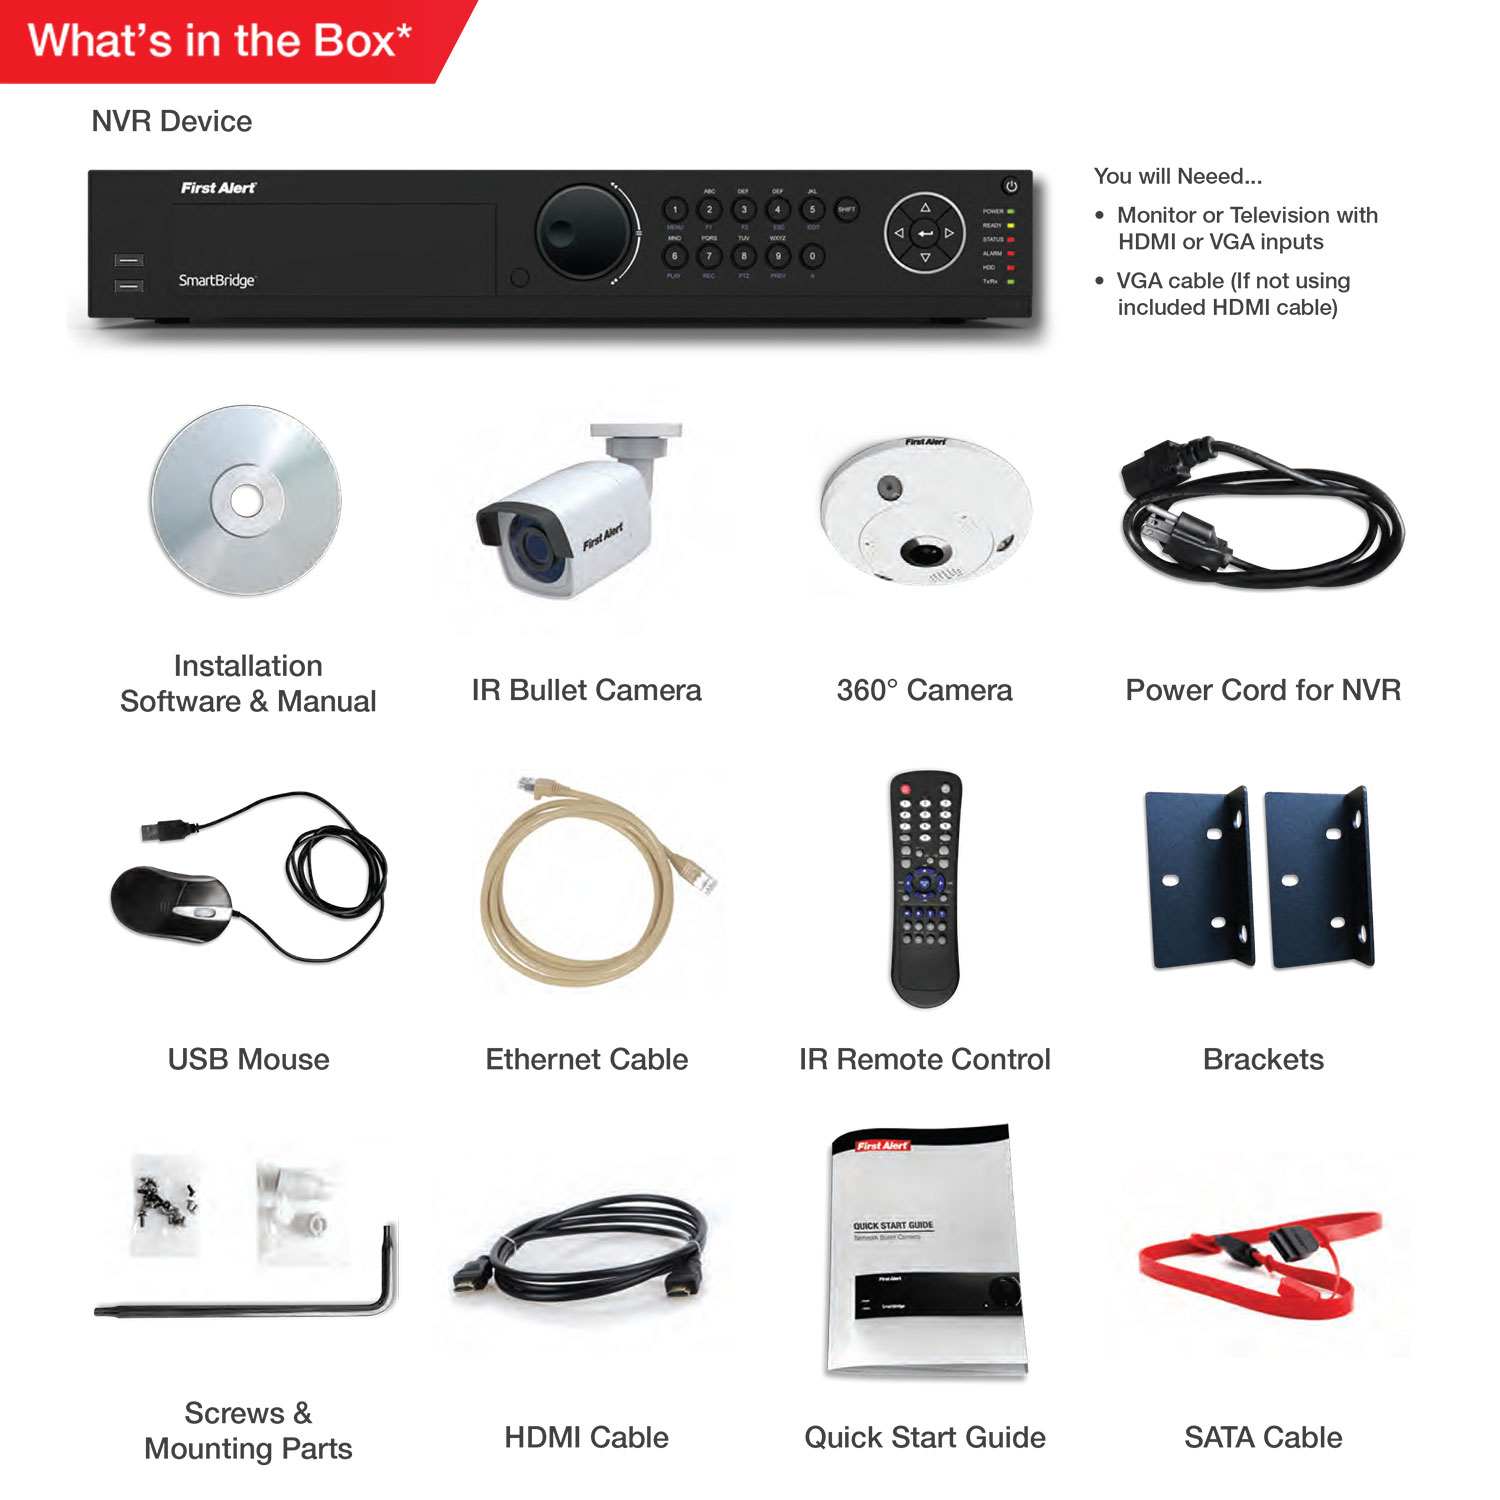 First Alert 16 Channel HD 4TB NVR Surveillance System with 1-3MP 360 Camera and 4-1080p Bullet Cameras, Smartbridge NC1641F4-360